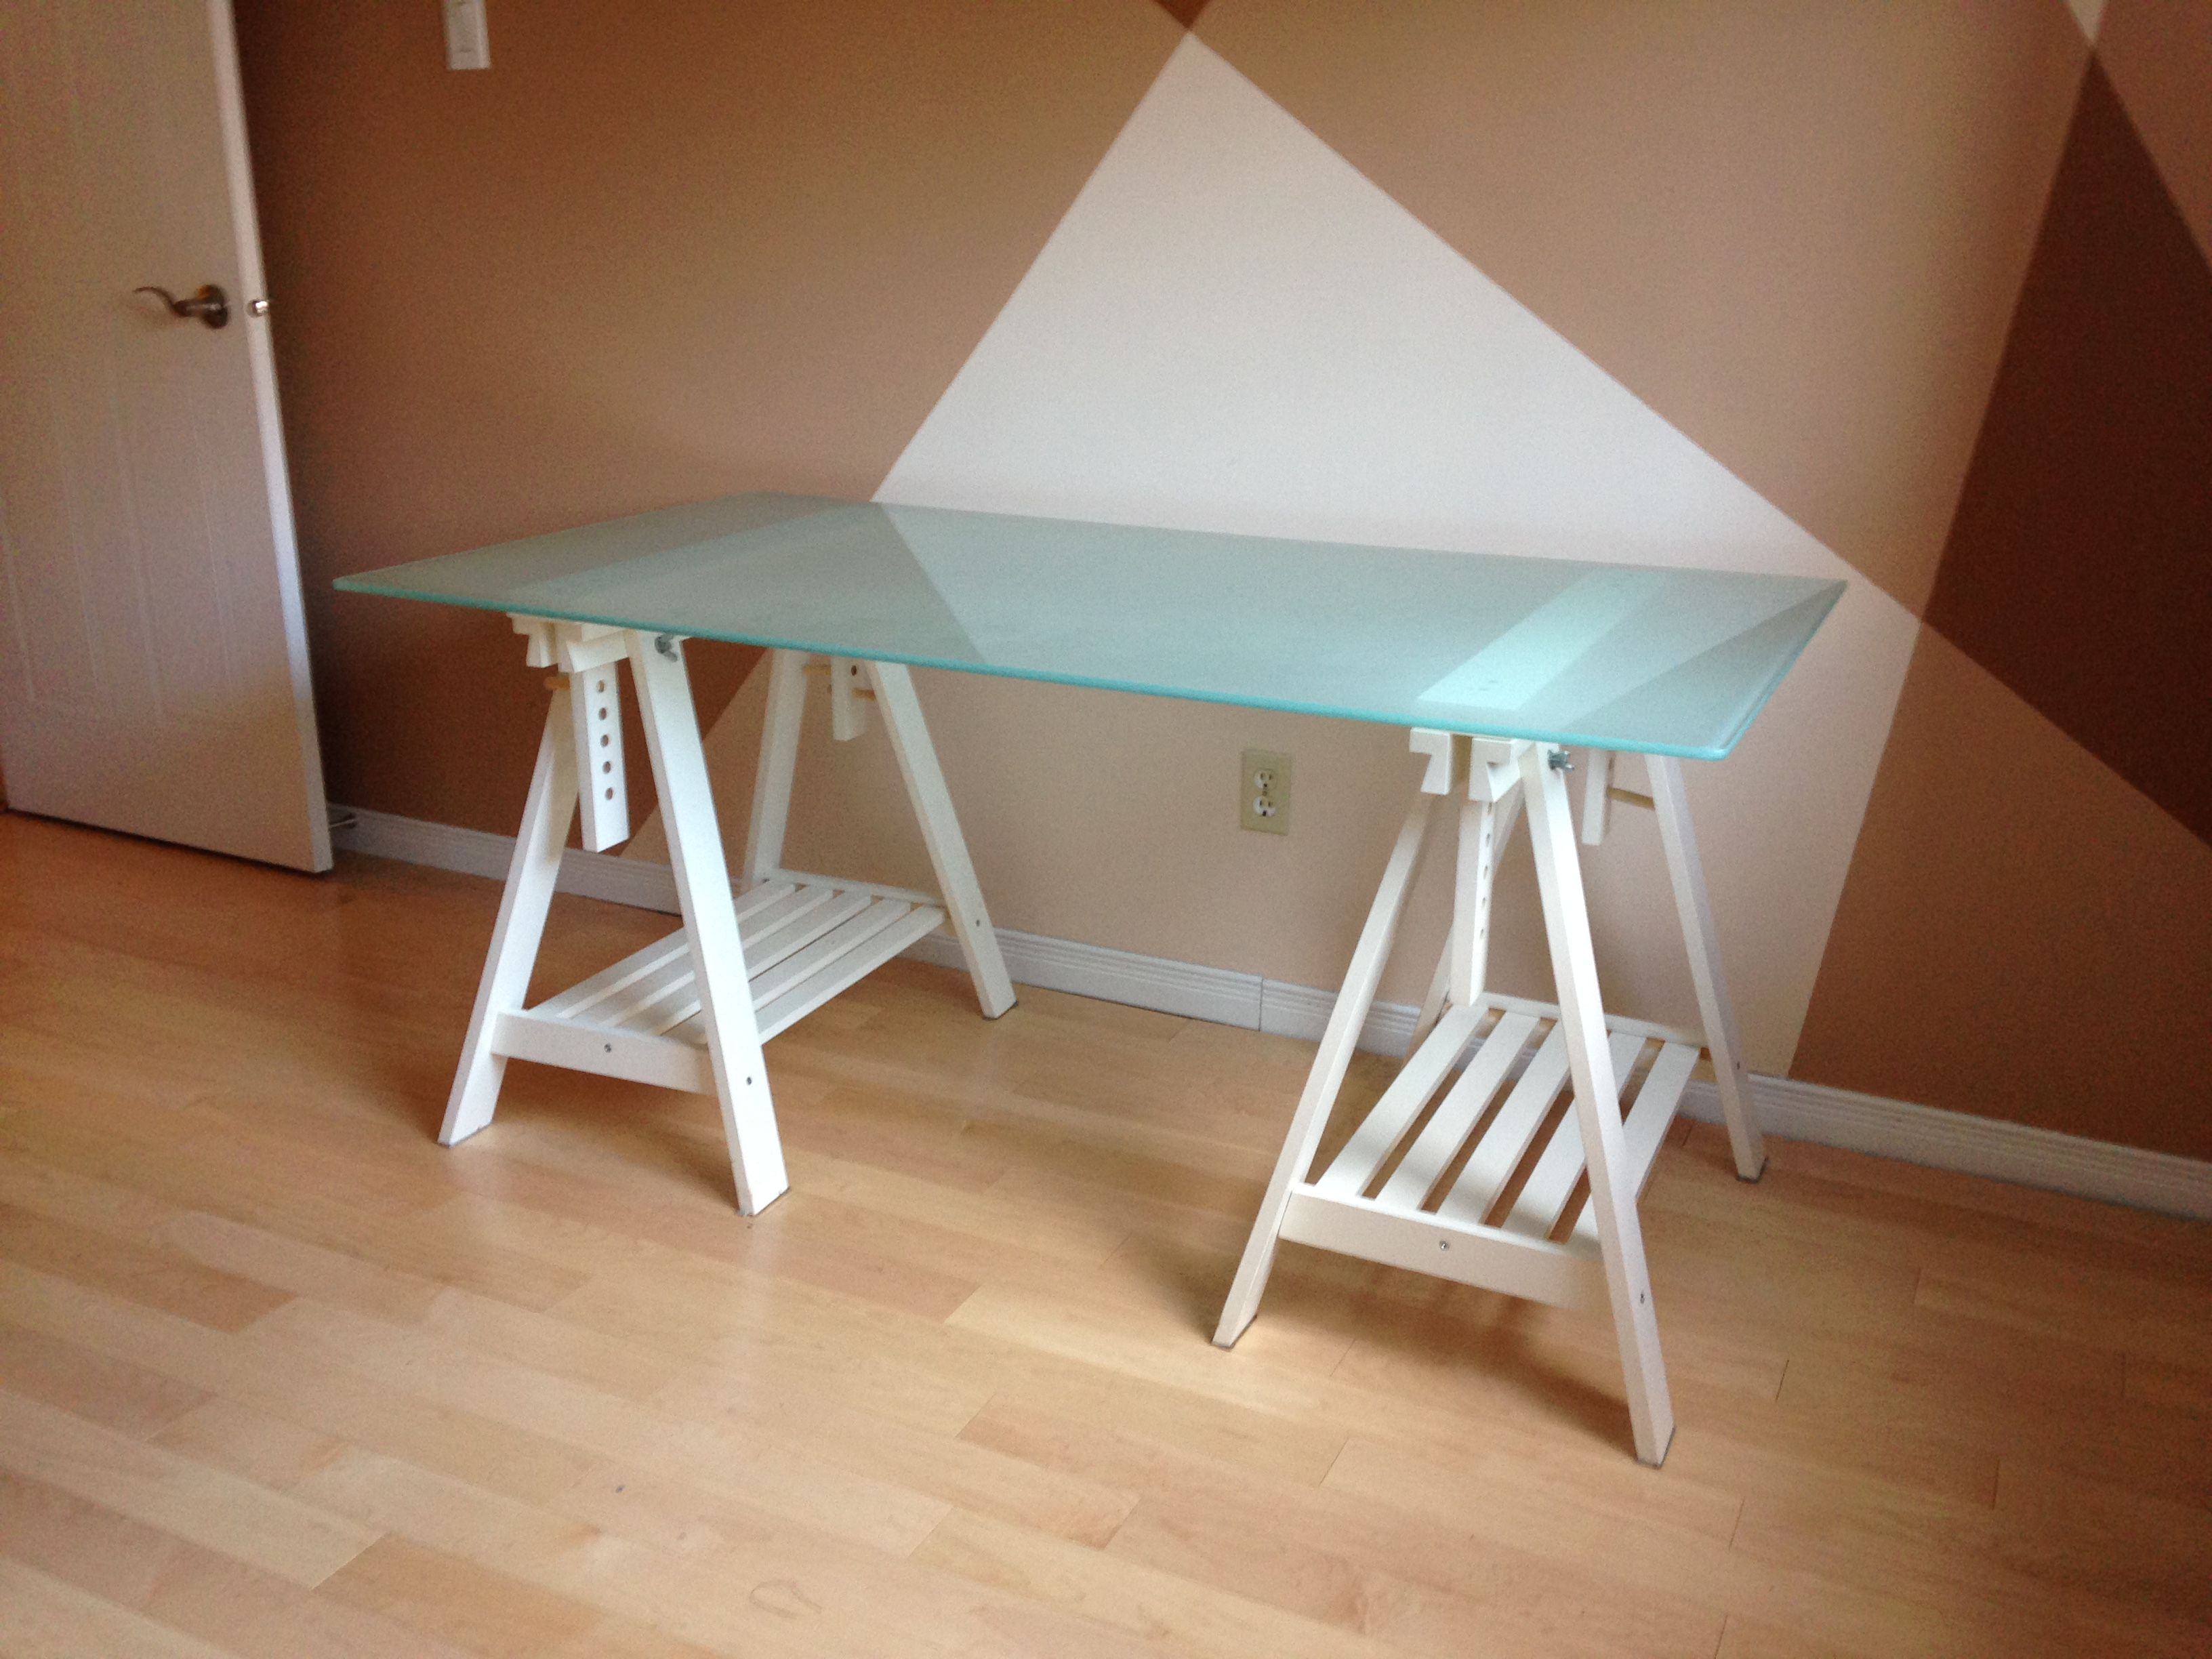 Ikea Glass Desk Top With Adjustable White Trestle Legs Ikea Glasholm Glass Table Top 58 1 4x28 3 4 Pair Of F Glass Desk Ikea Glass Desk Glass Top Desk